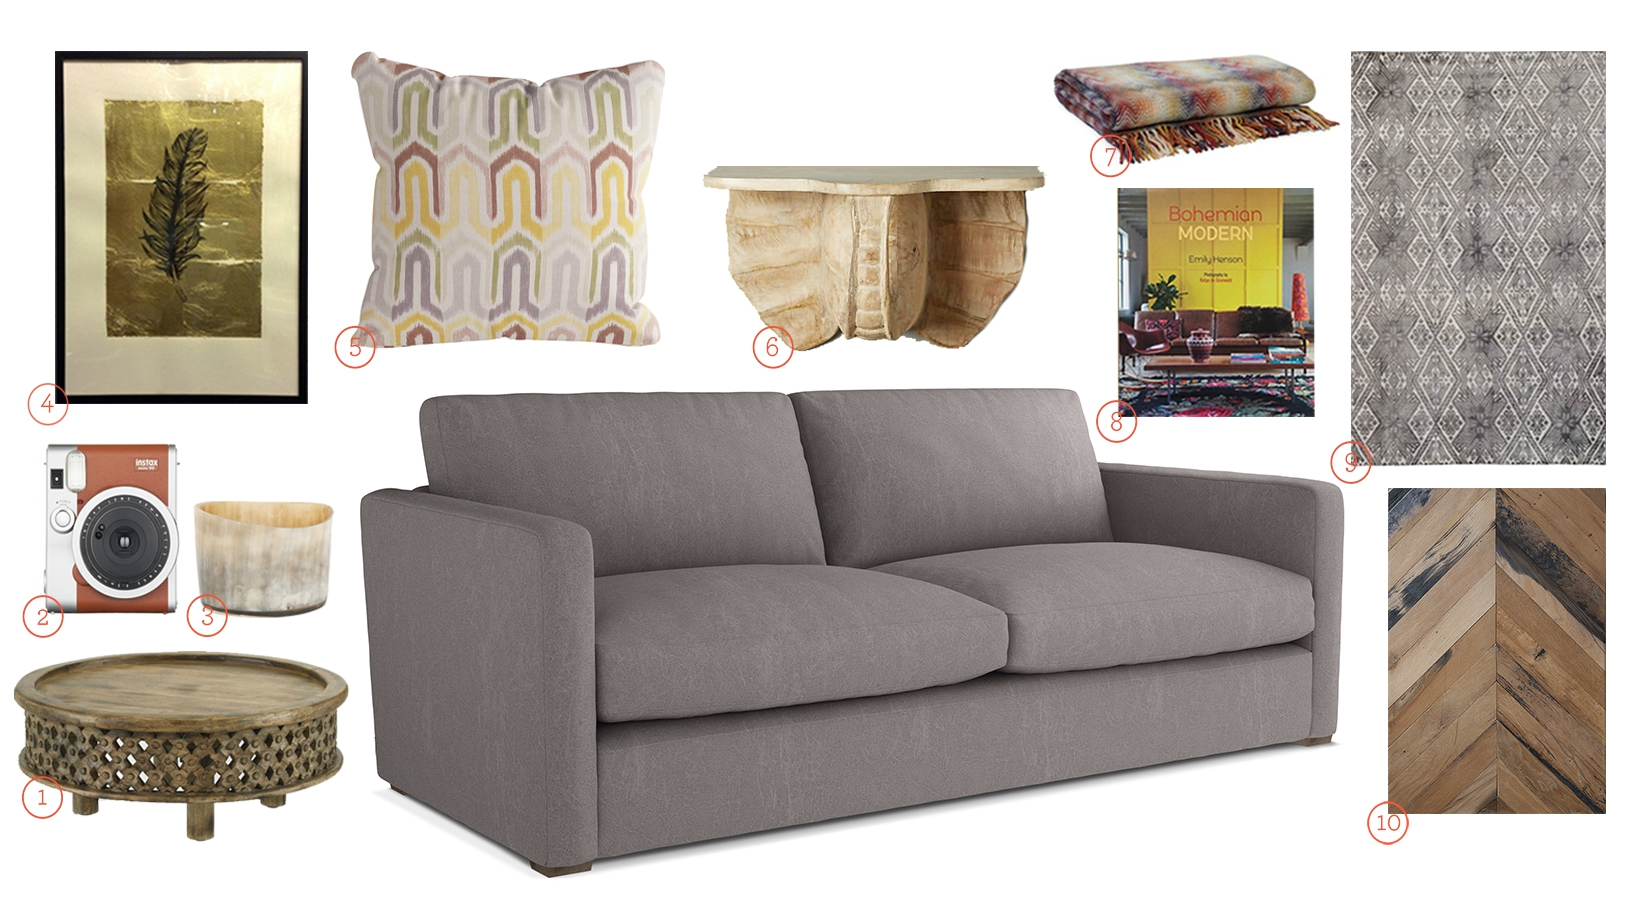 Get The Look - Mowbray Sofa in Grey Fabric